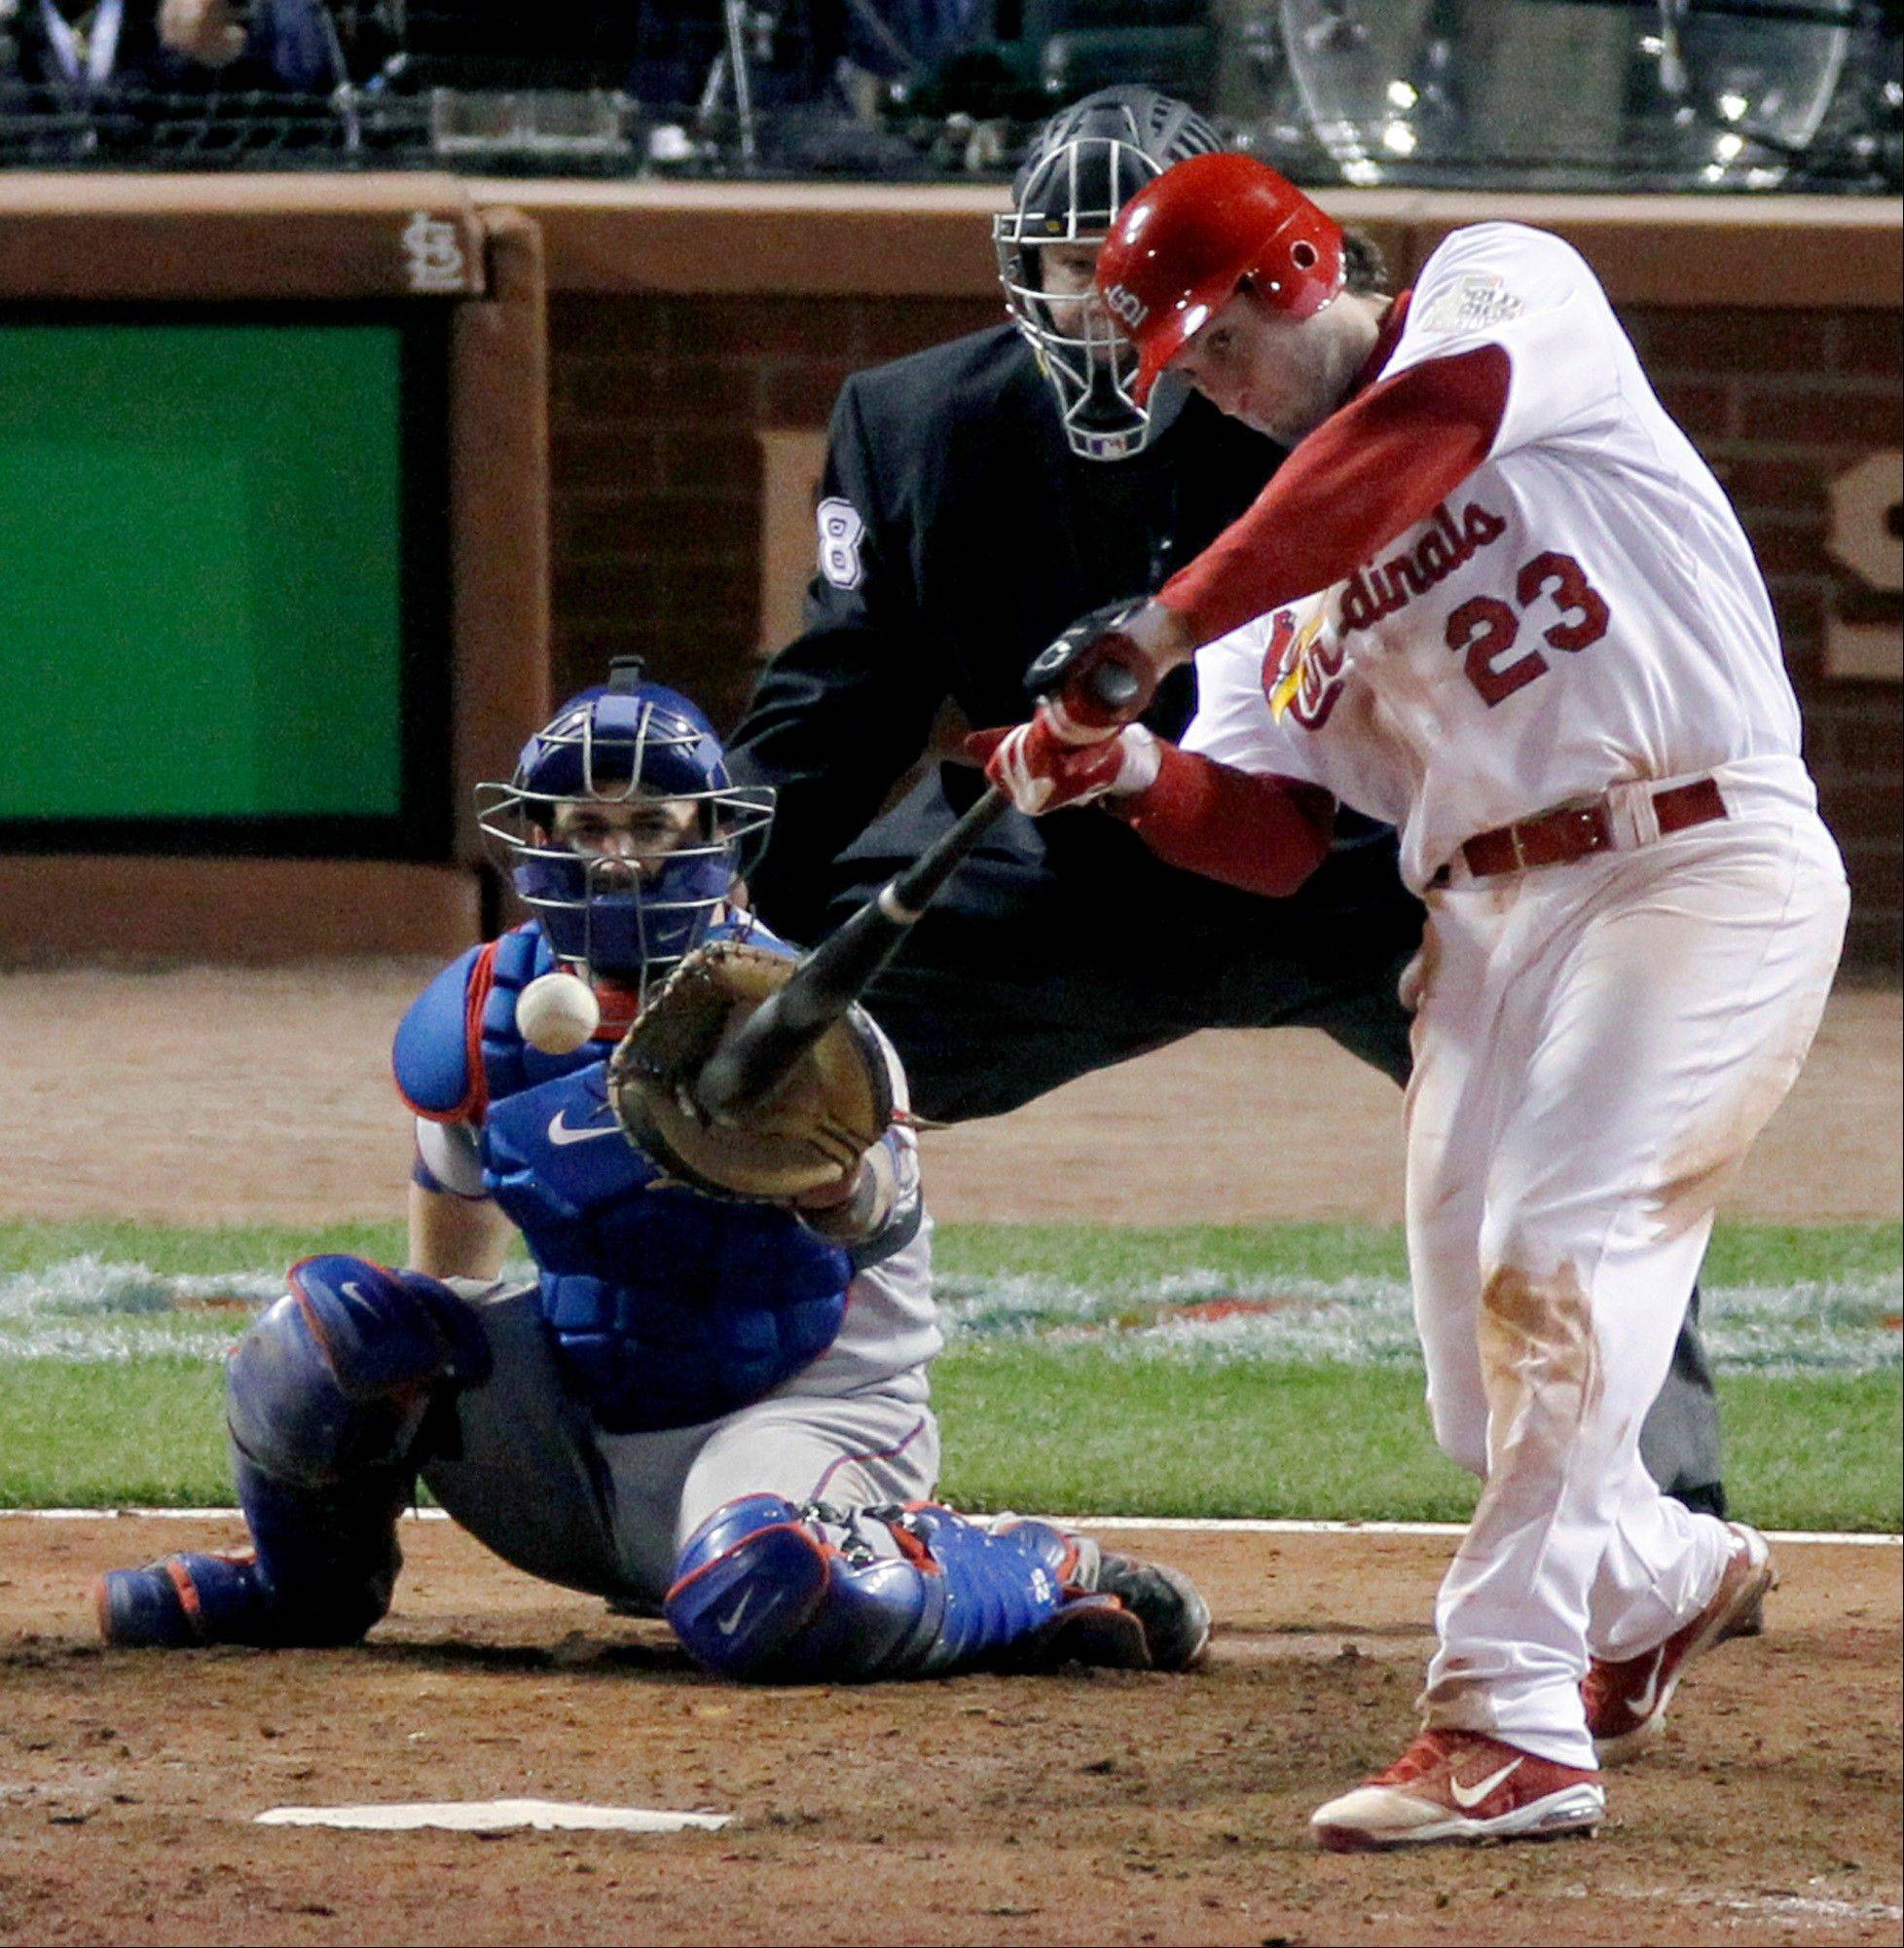 The Cardinals' David Freese hits a solo home run off Texas pitcher Mark Lowe in the 11th inning of Game 6 of the 2011 World Series.